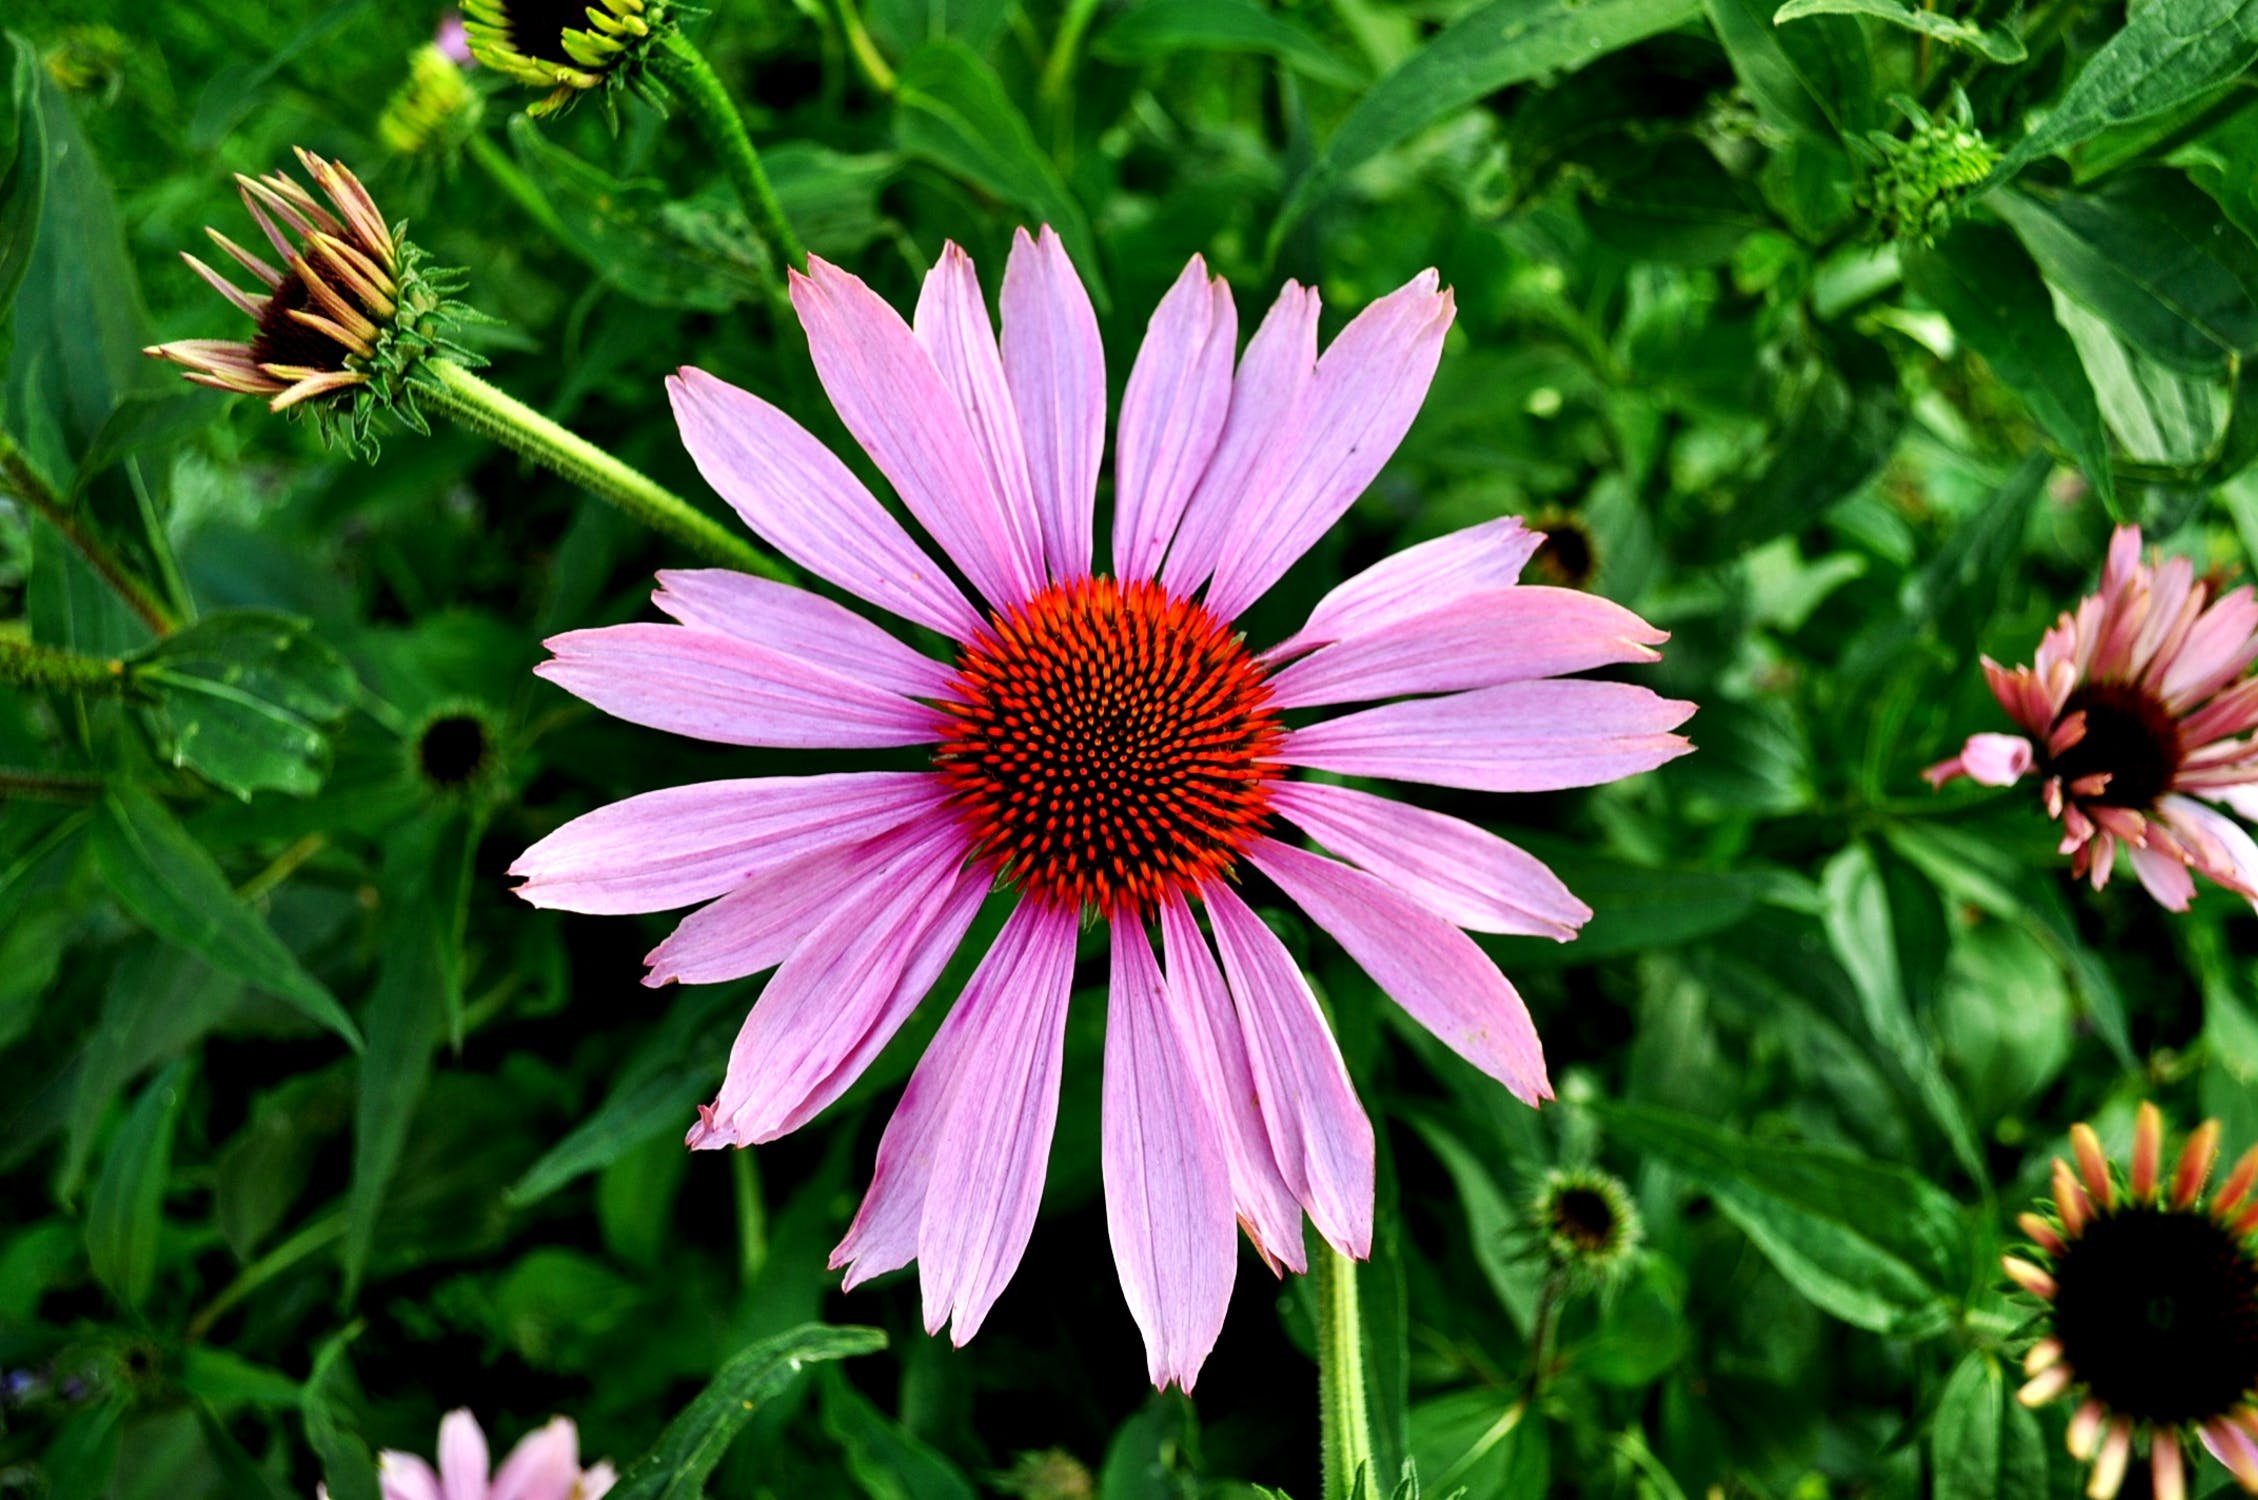 The Ultimate Guide to Echinacea Tea: Benefits, Side Effects